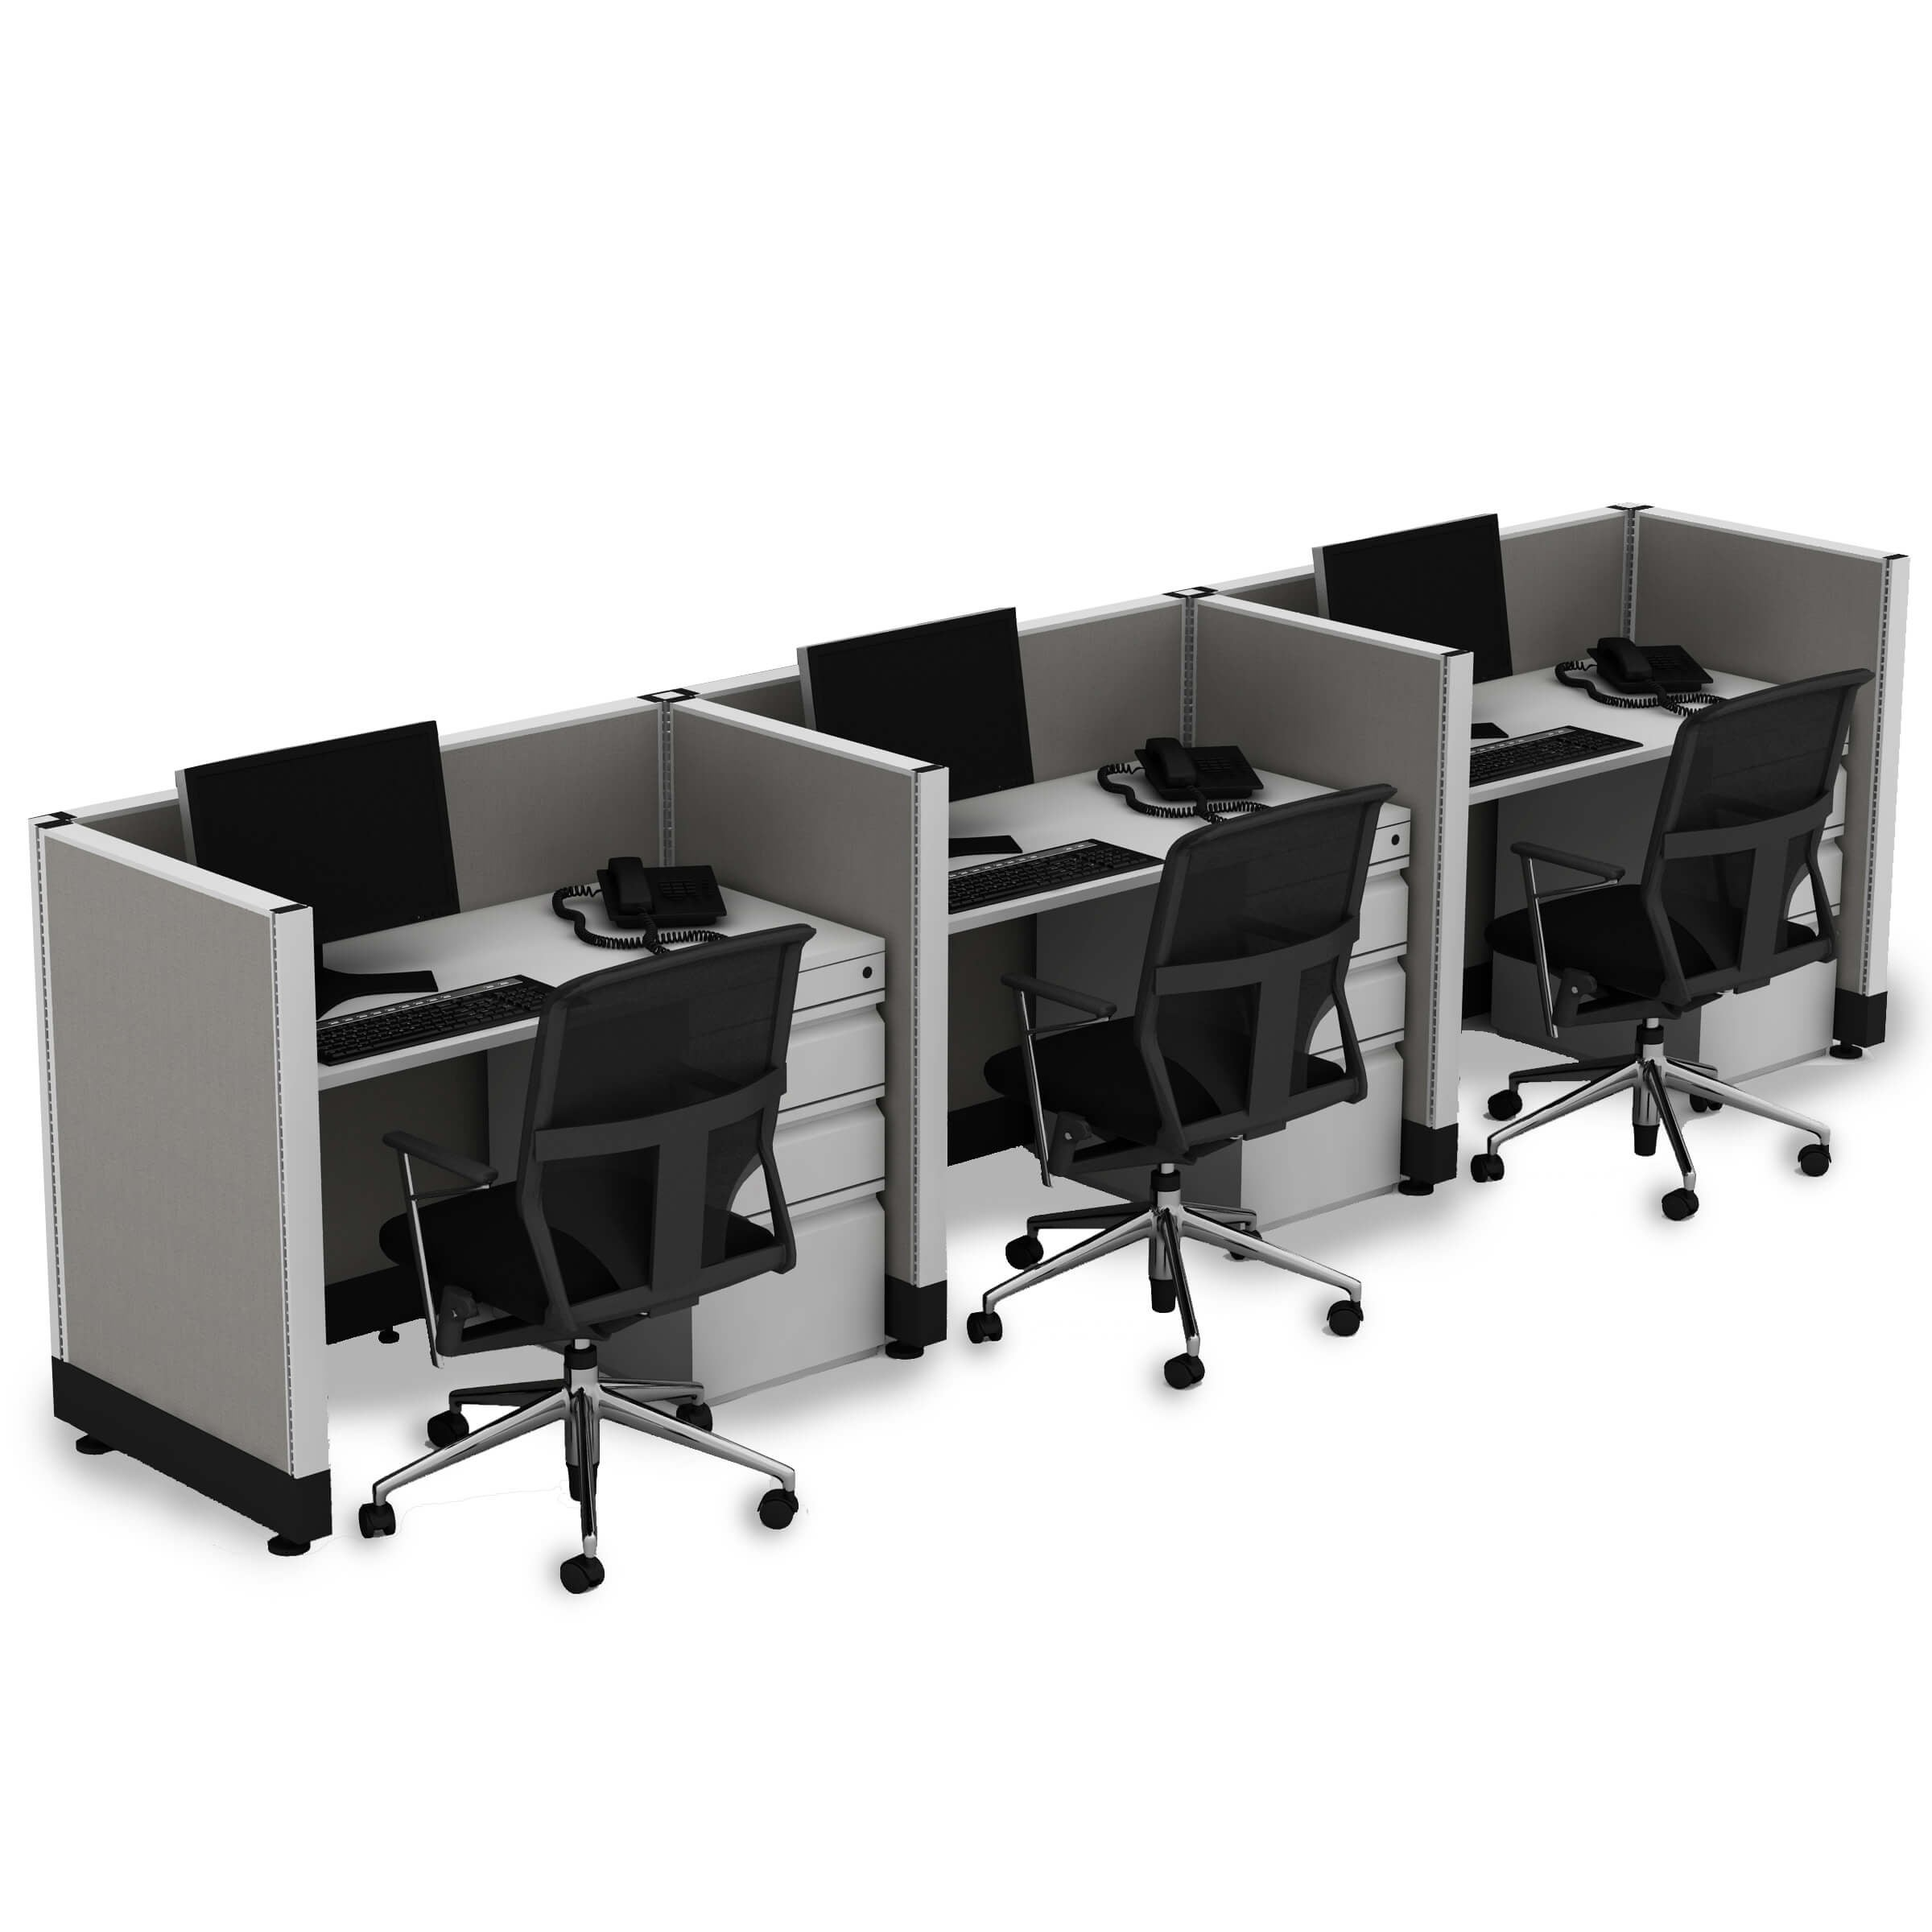 Small Office Cubicles 39H 3pack Inline Unpowered (2x3 - Walnut Desk White Paint - Assembled)